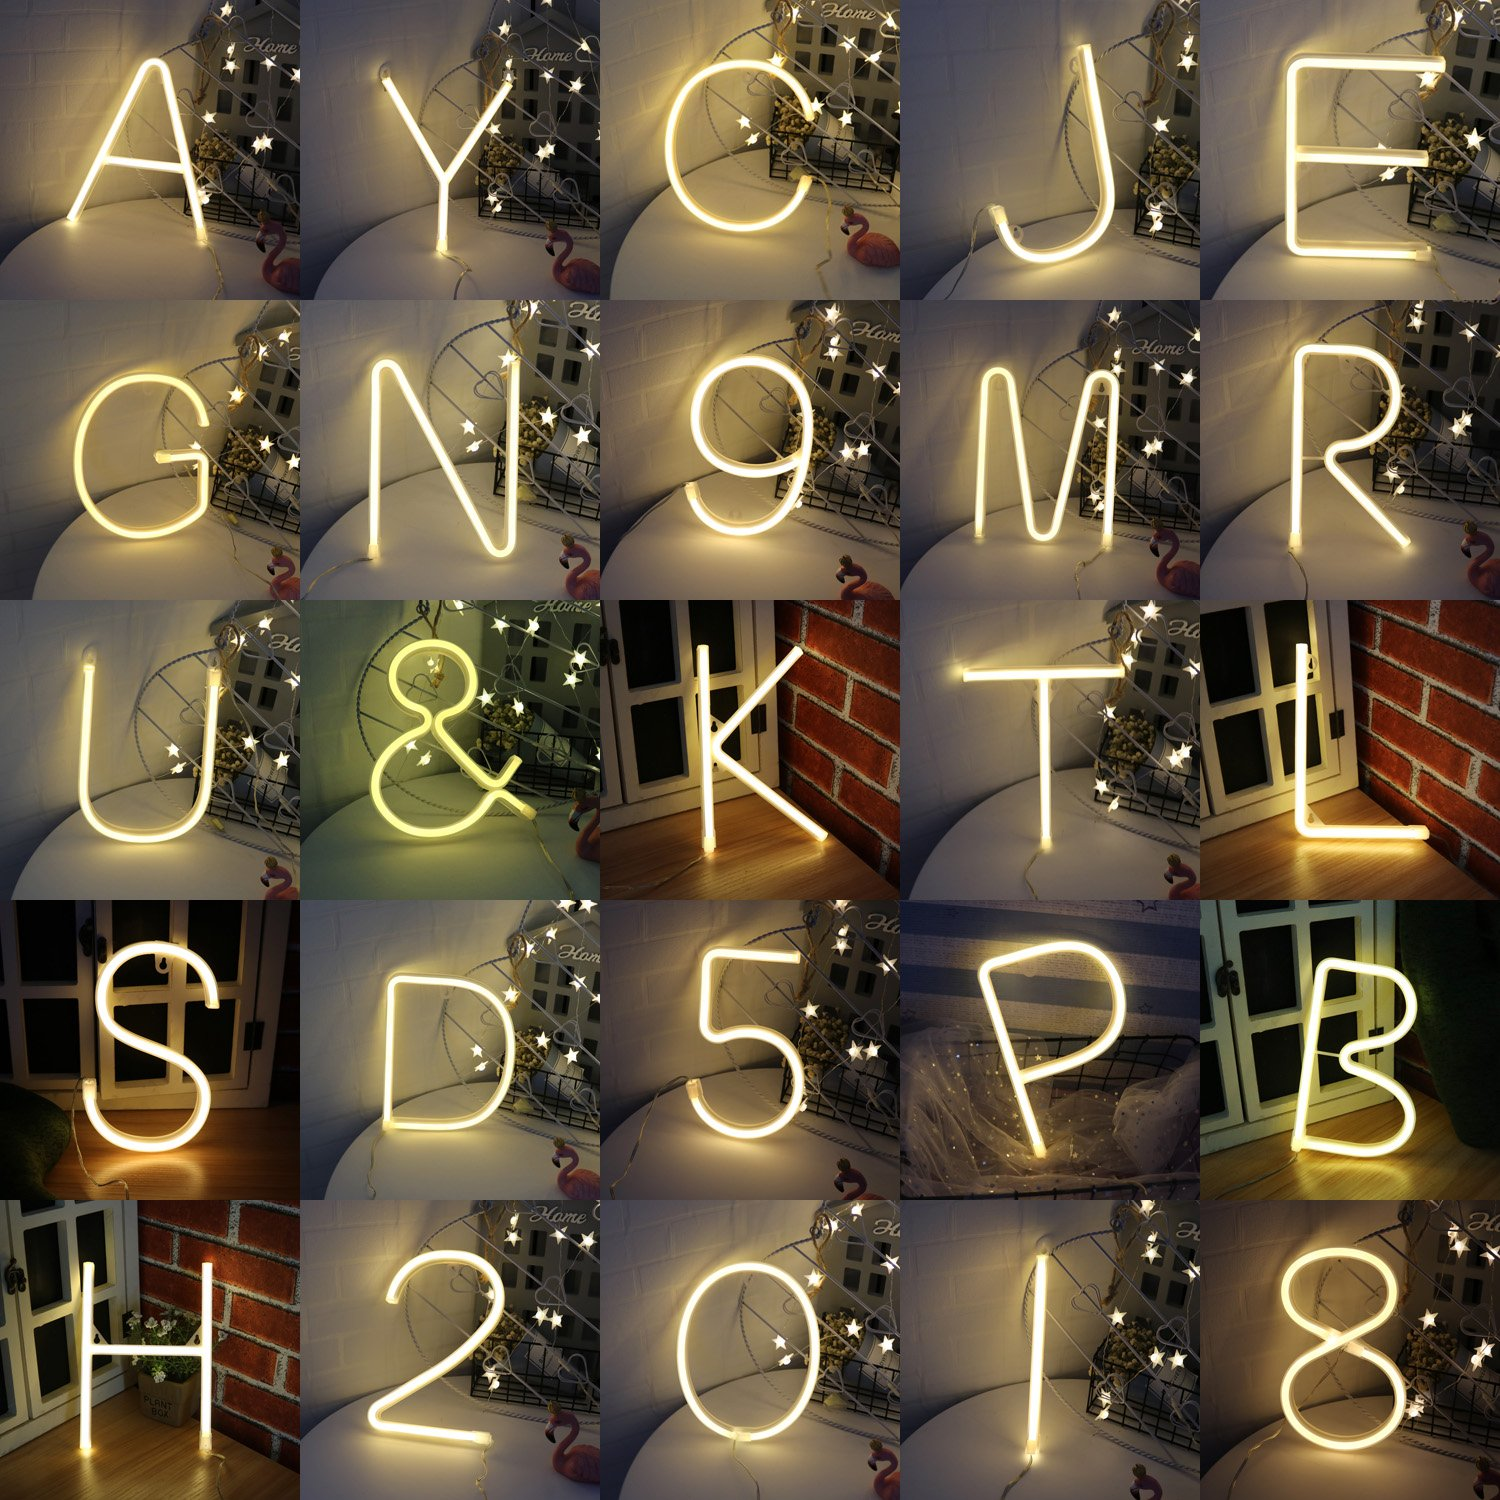 Light up LED Neon Letter Sign Ampersand Wall Decorative Neon Lights Warm White Alphabet Marquee Letter Lights Night Lamp for Home, Living Room, Birthday Wedding Party Decor - & by Obrecis (Image #5)